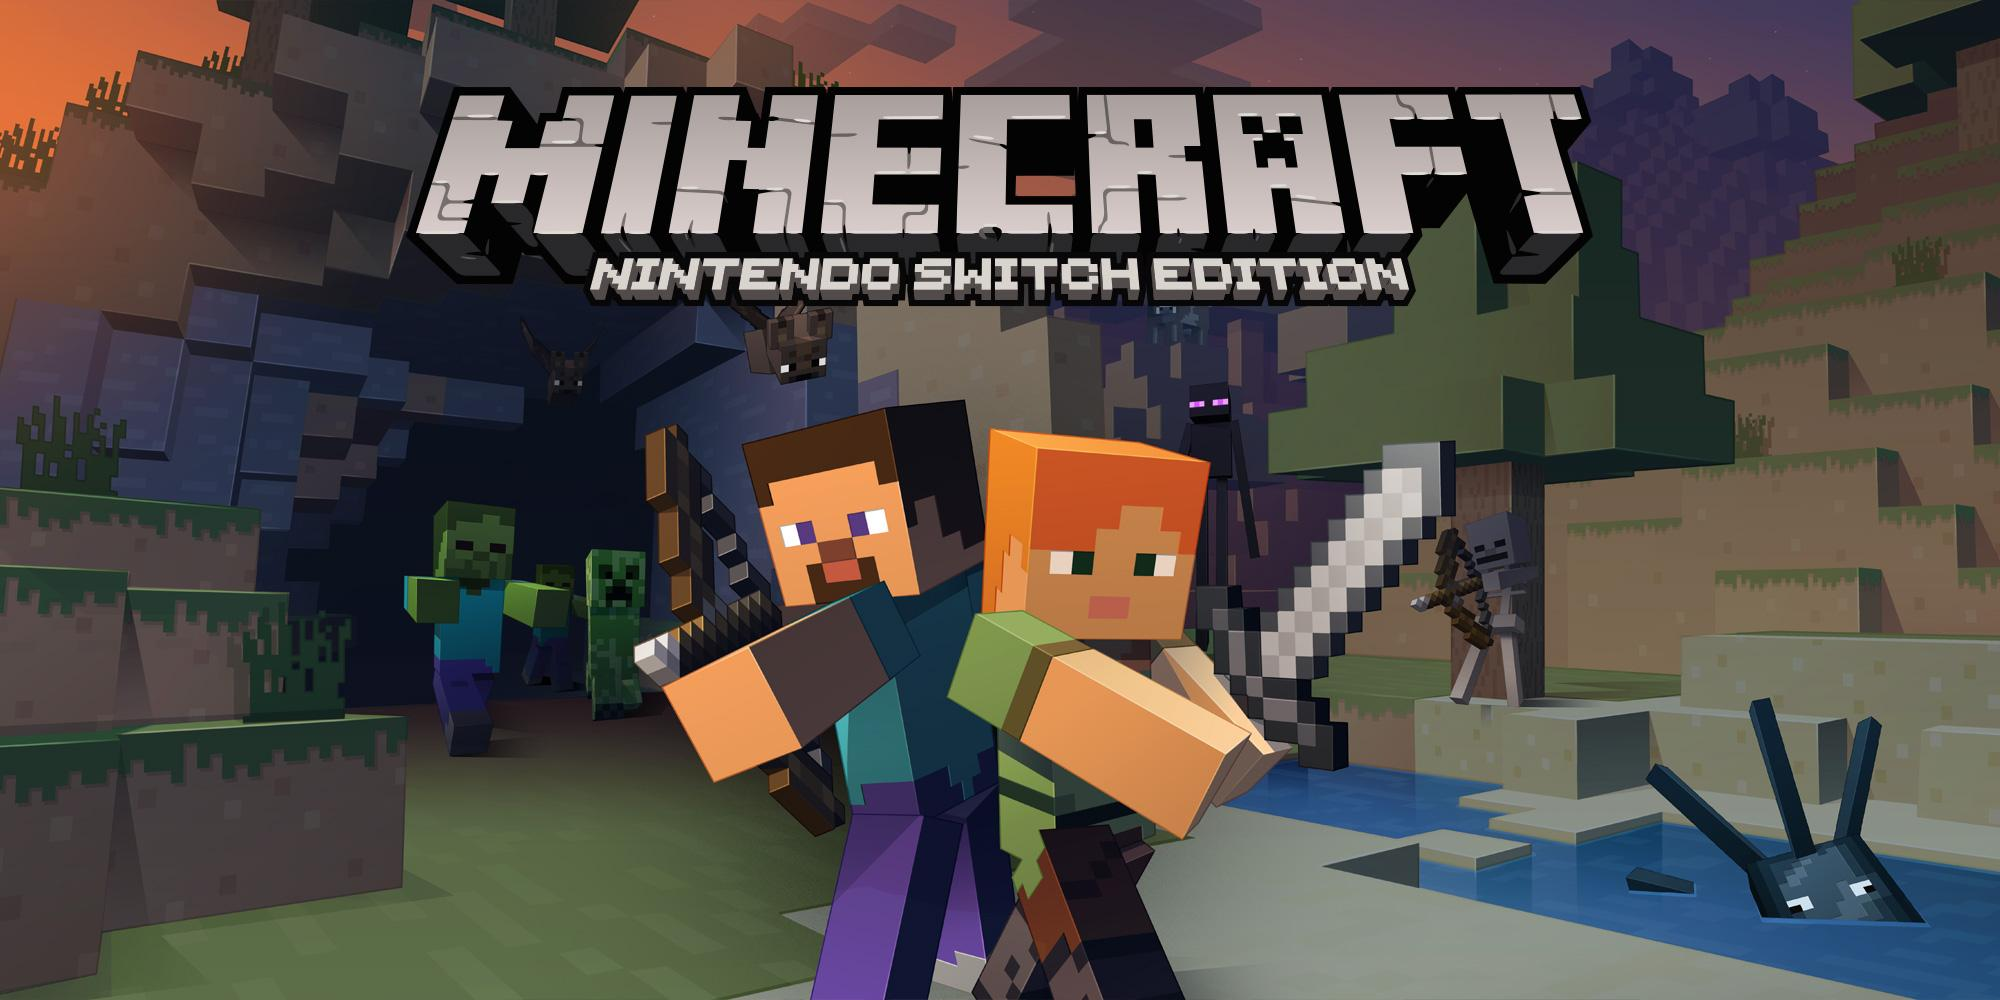 How To Make A Book Minecraft Xbox ~ Minecraft: switch edition review: an almost perfect handheld version